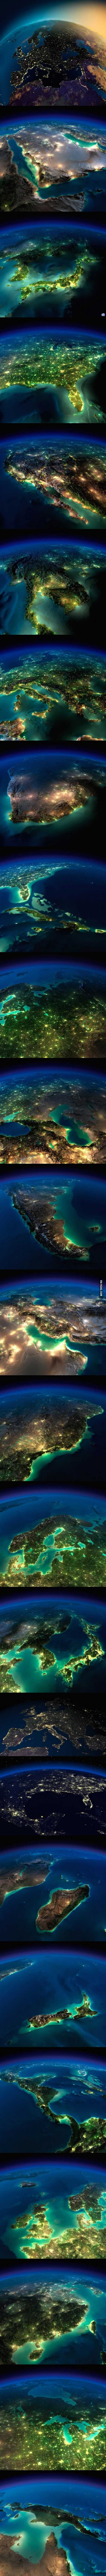 IRAN / Can you find Persian Gulf and Caspian sea and IRAN in these views?? /Earth at Night